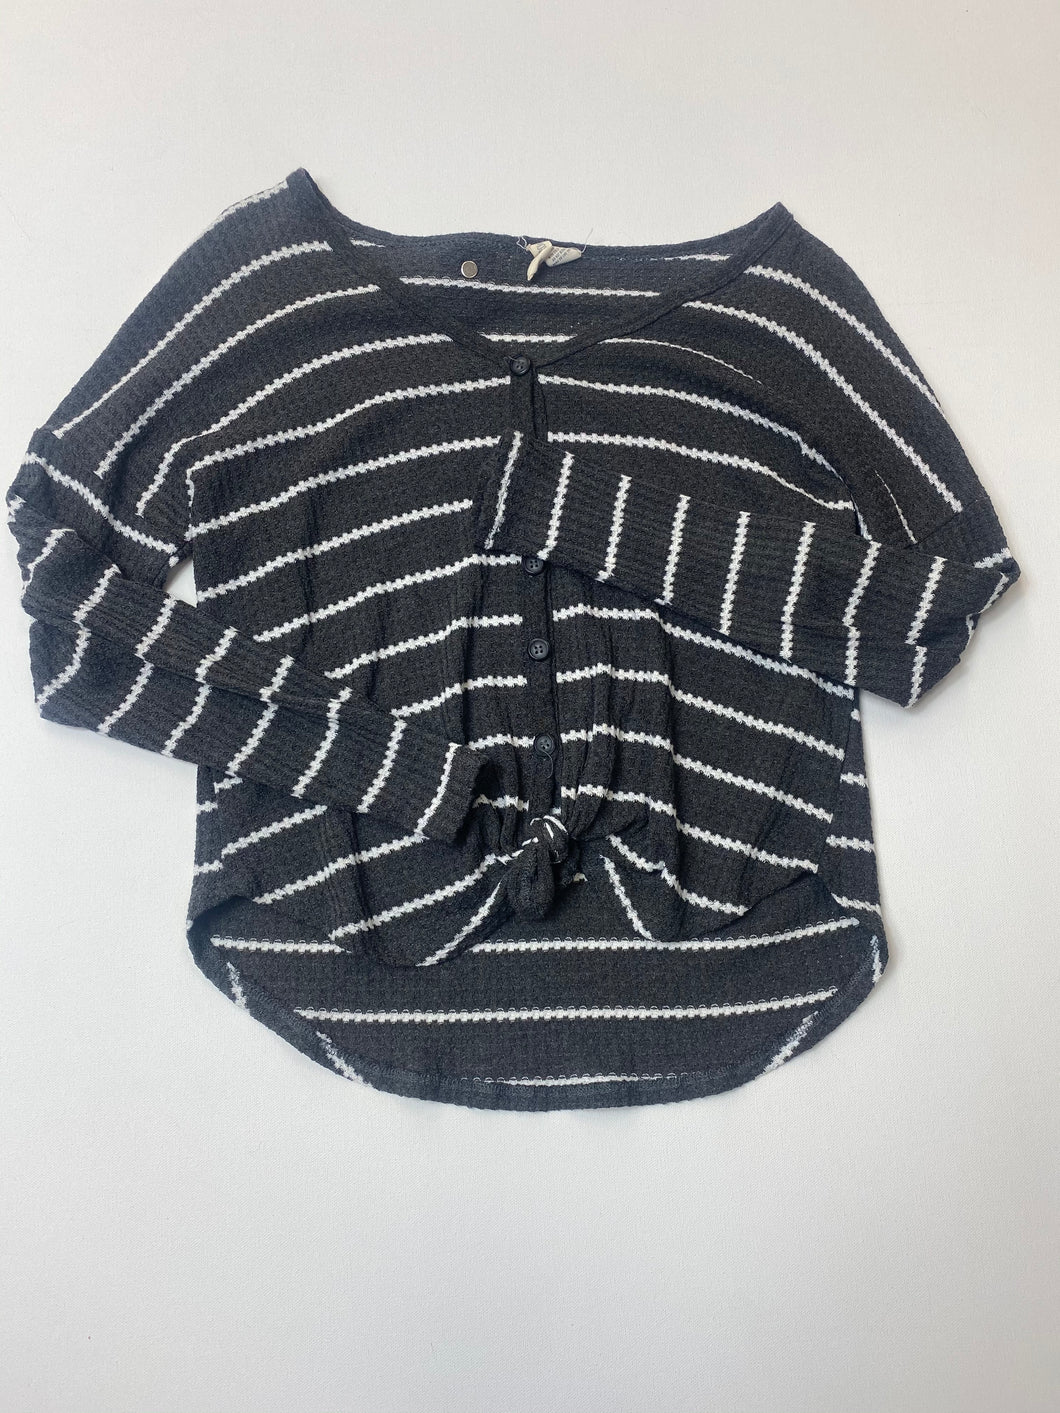 Long Sleeve Top Size Extra Small